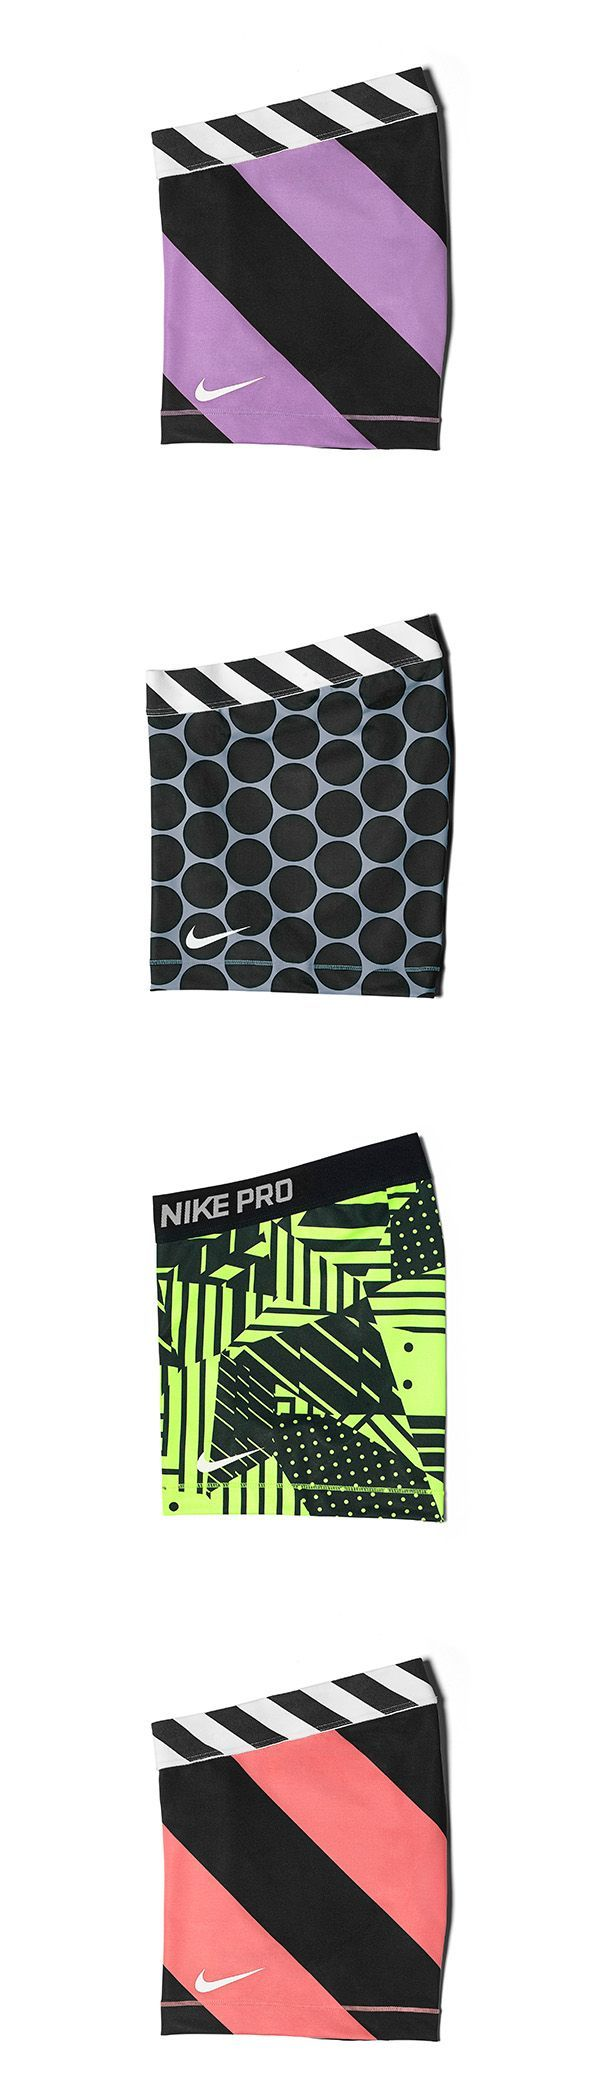 Mix and match for a bold new summer look. This print to train outside. That pattern for the gym. Make it your own with the Nike Pro 3 shorts.